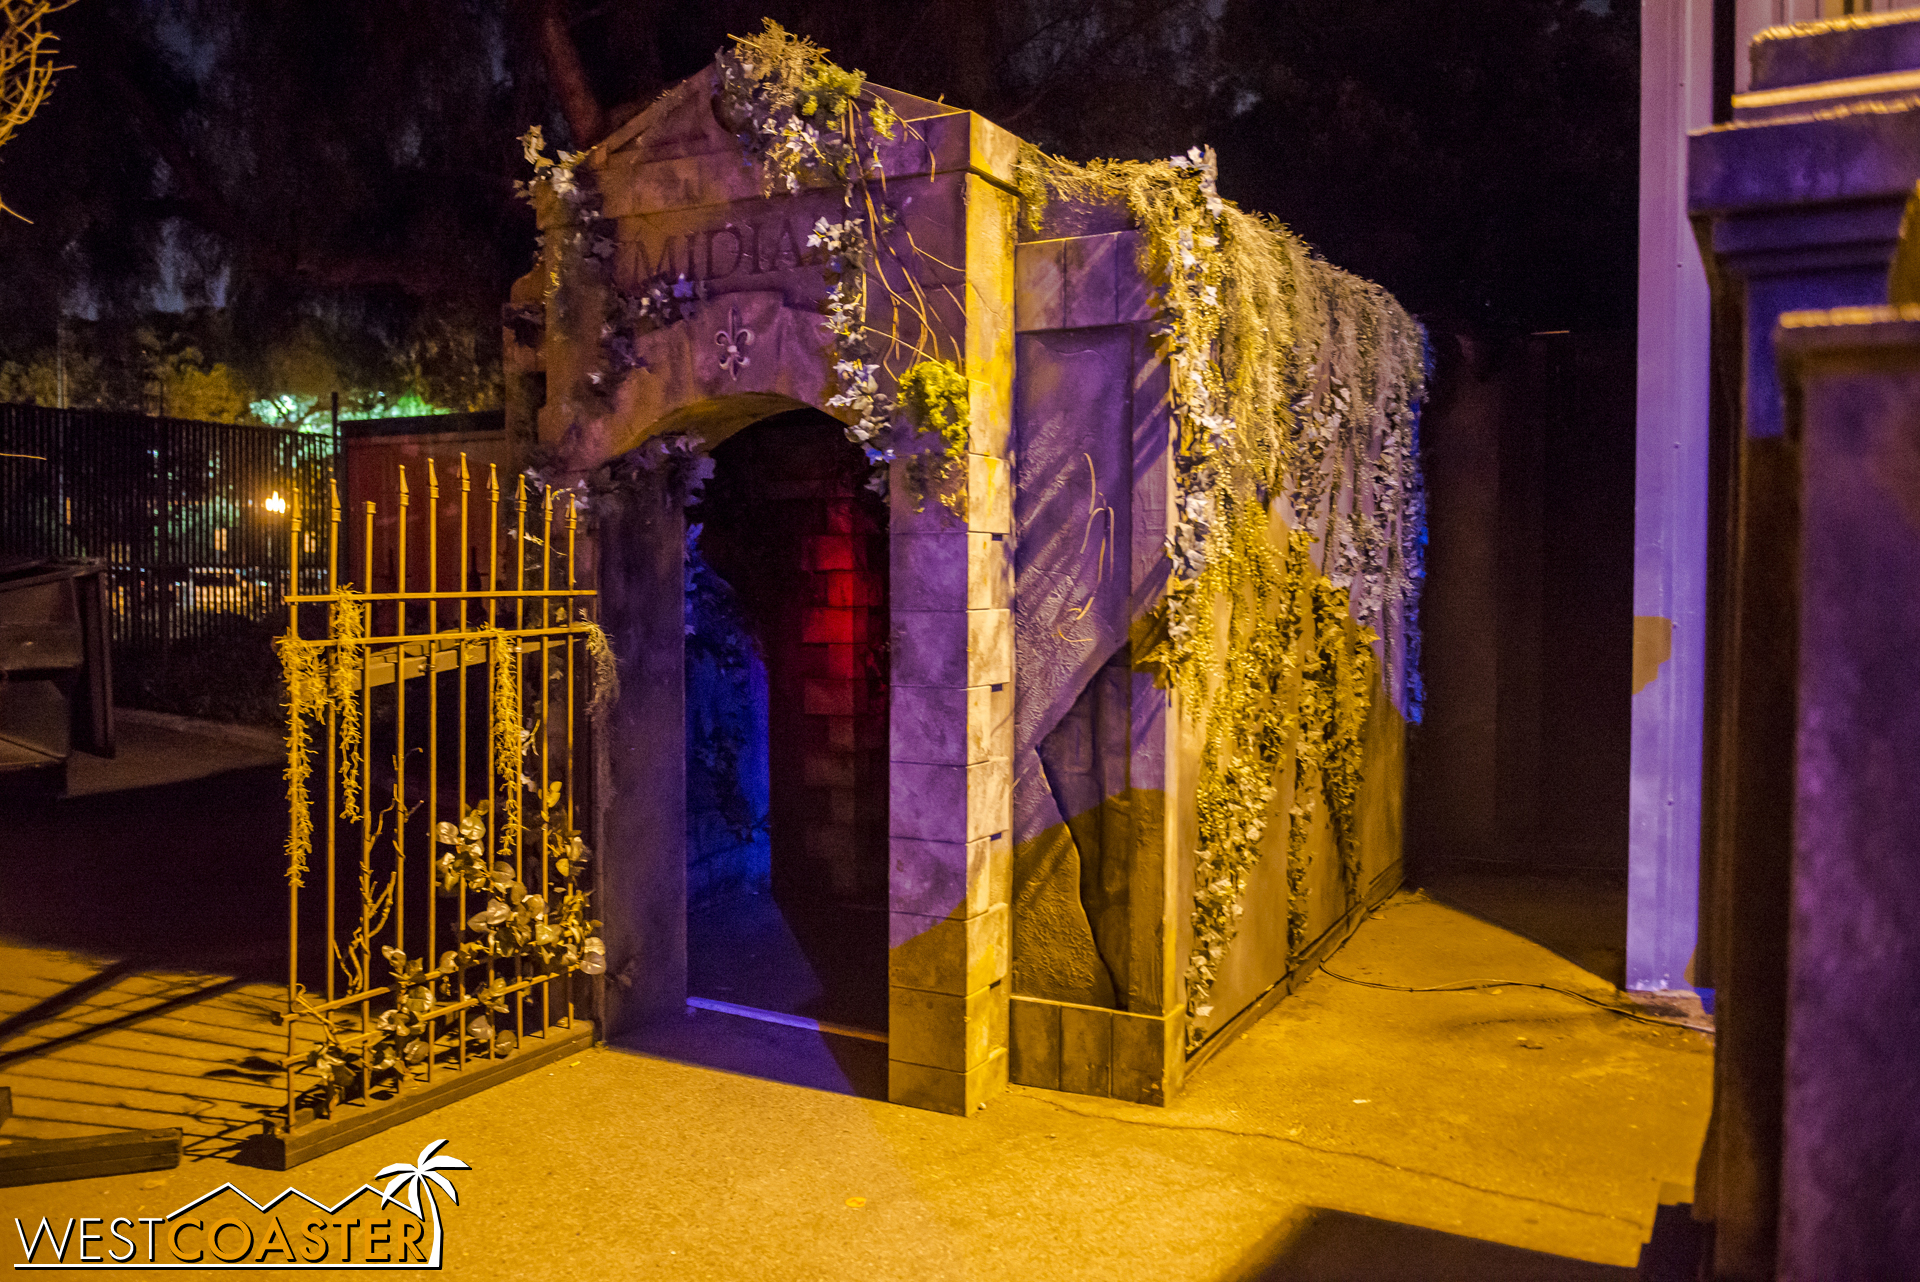 The entrance to Voodoo is through the exit this year. In addition, Fright Lane guests should access Voodoo over by the entrance facade of Trick or Treat, while regular guests access the stand-by line opposite Paranormal Inc.